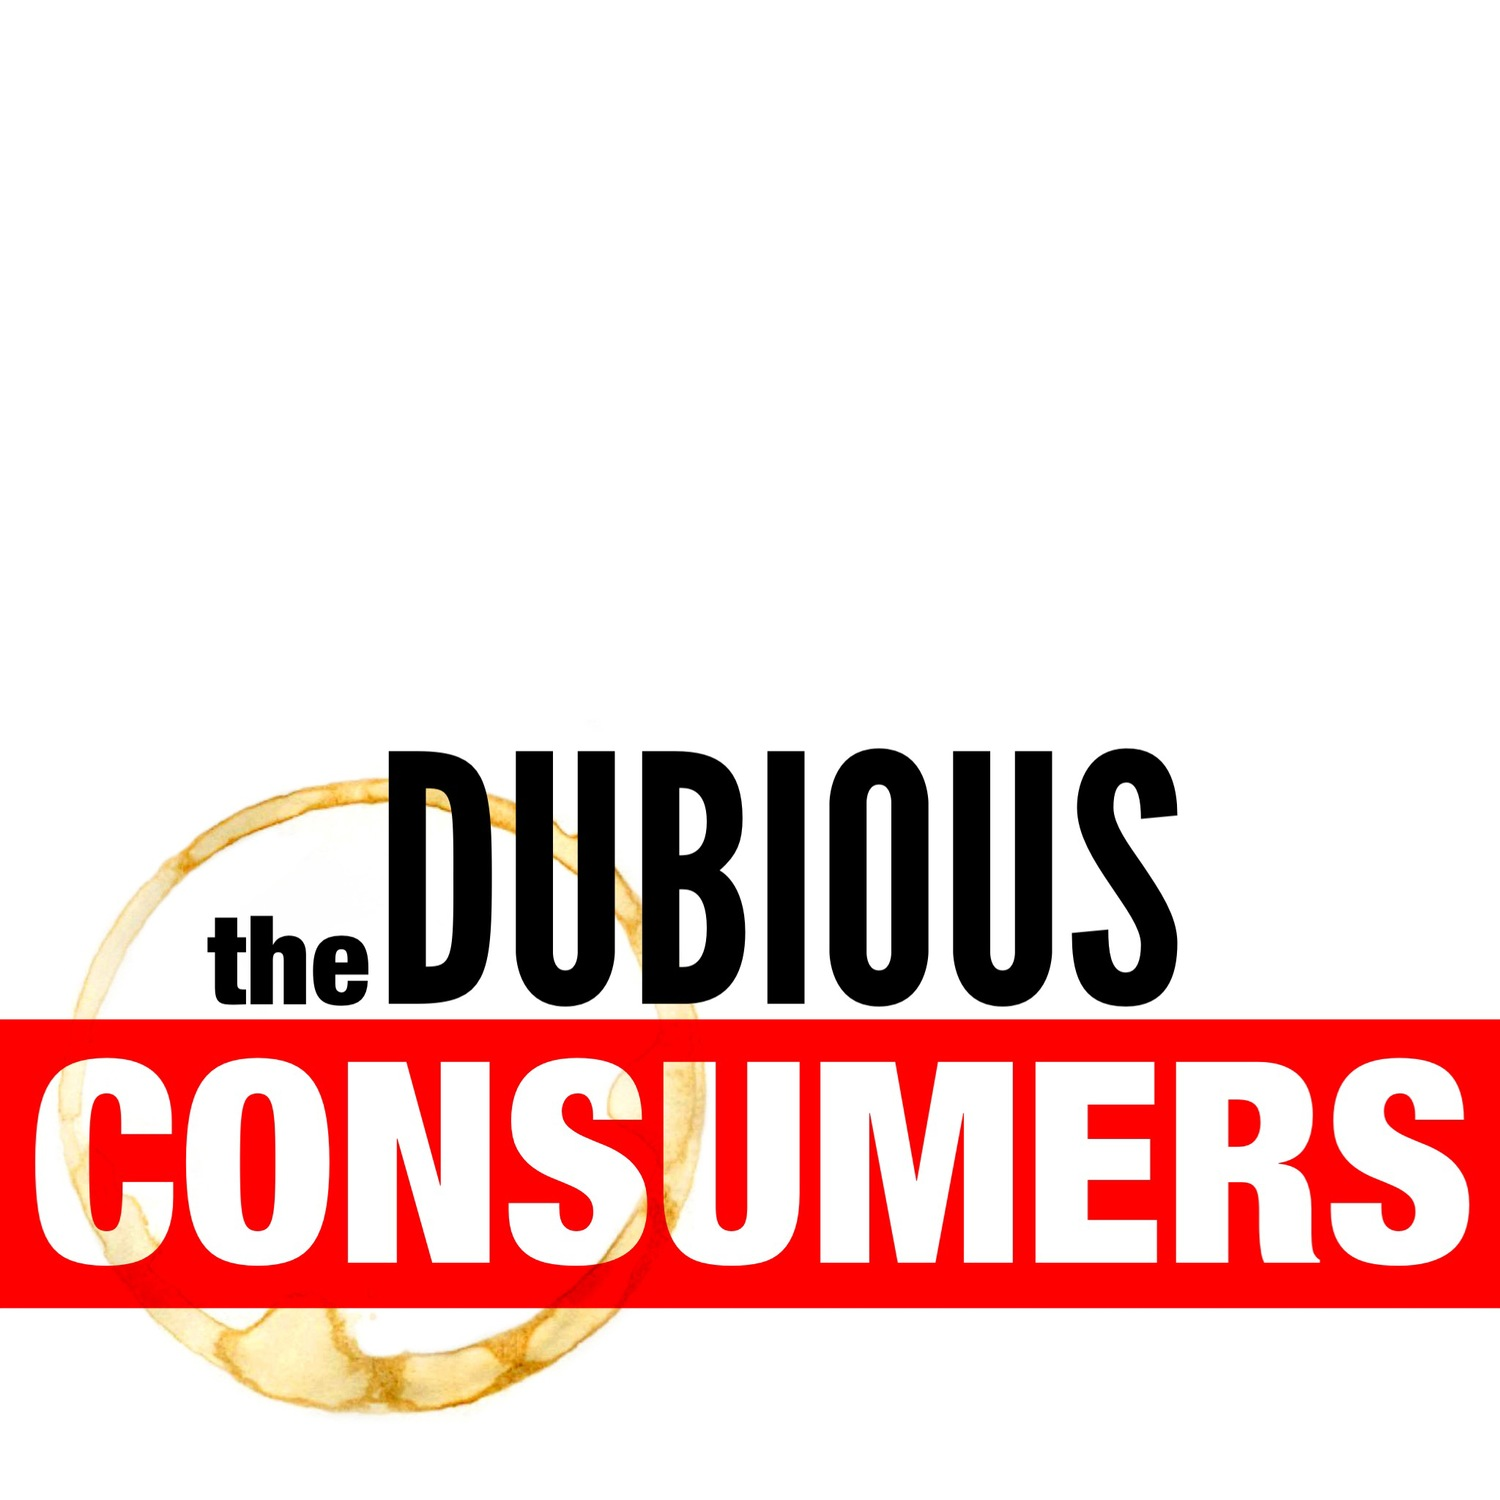 The Dubious Consumers